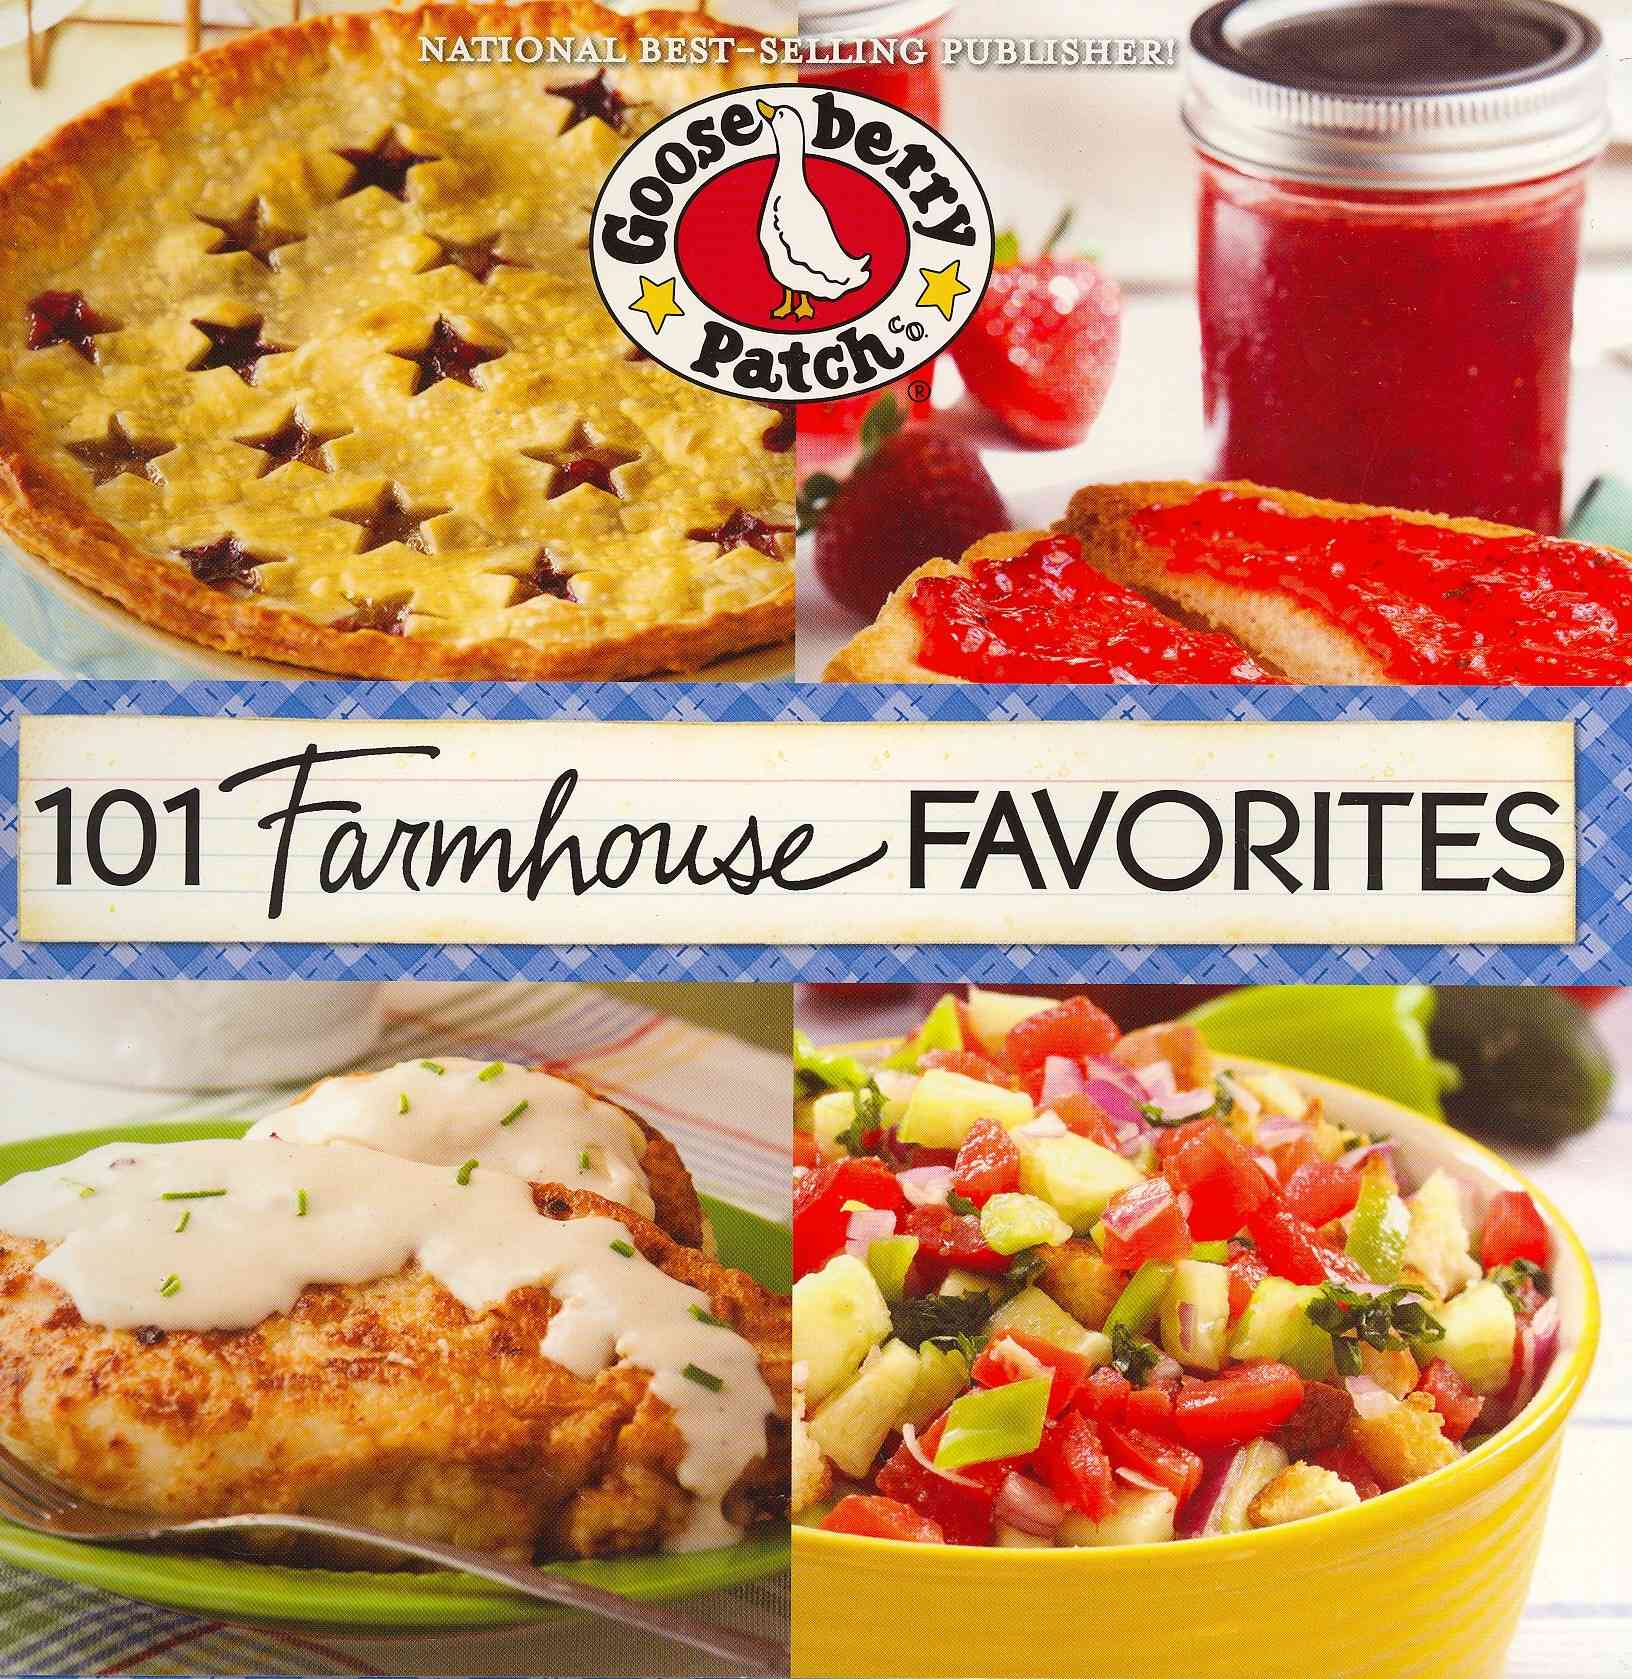 101 Farmhouse Favorites By Gooseberry Patch (COR)